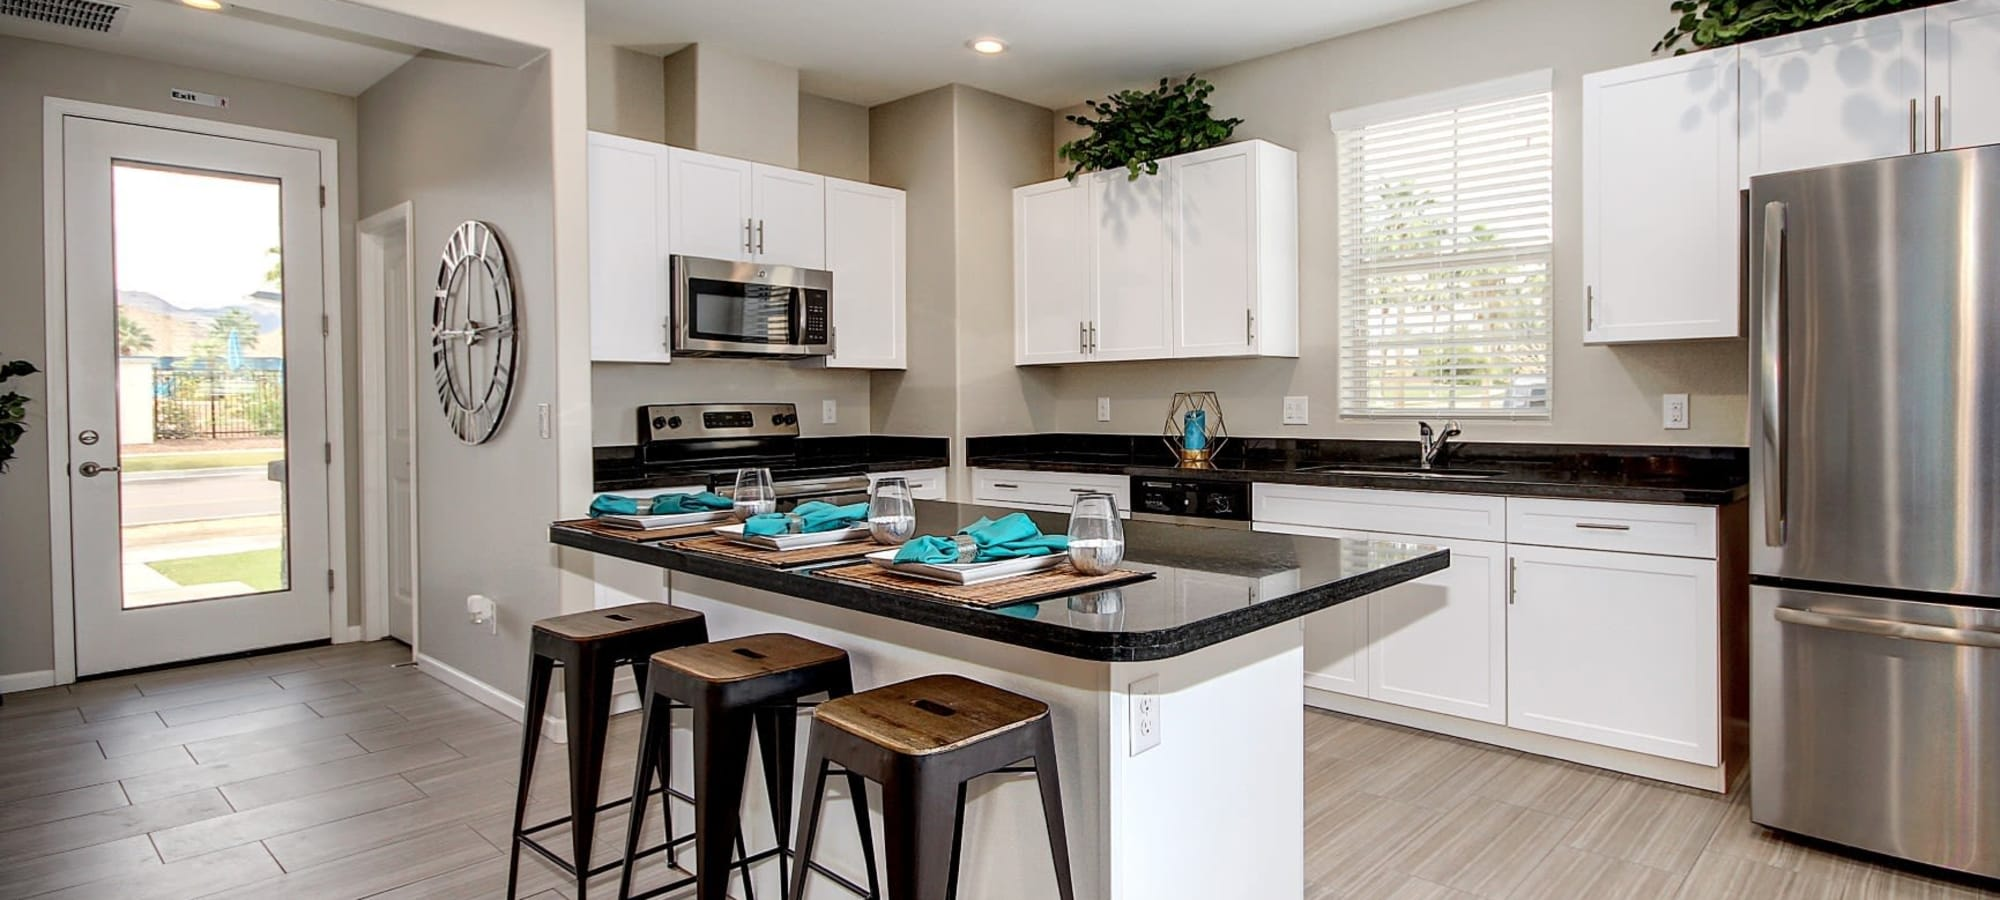 Modern kitchen with stainless-steel appliances at BB Living at Eastmark in Mesa, Arizona